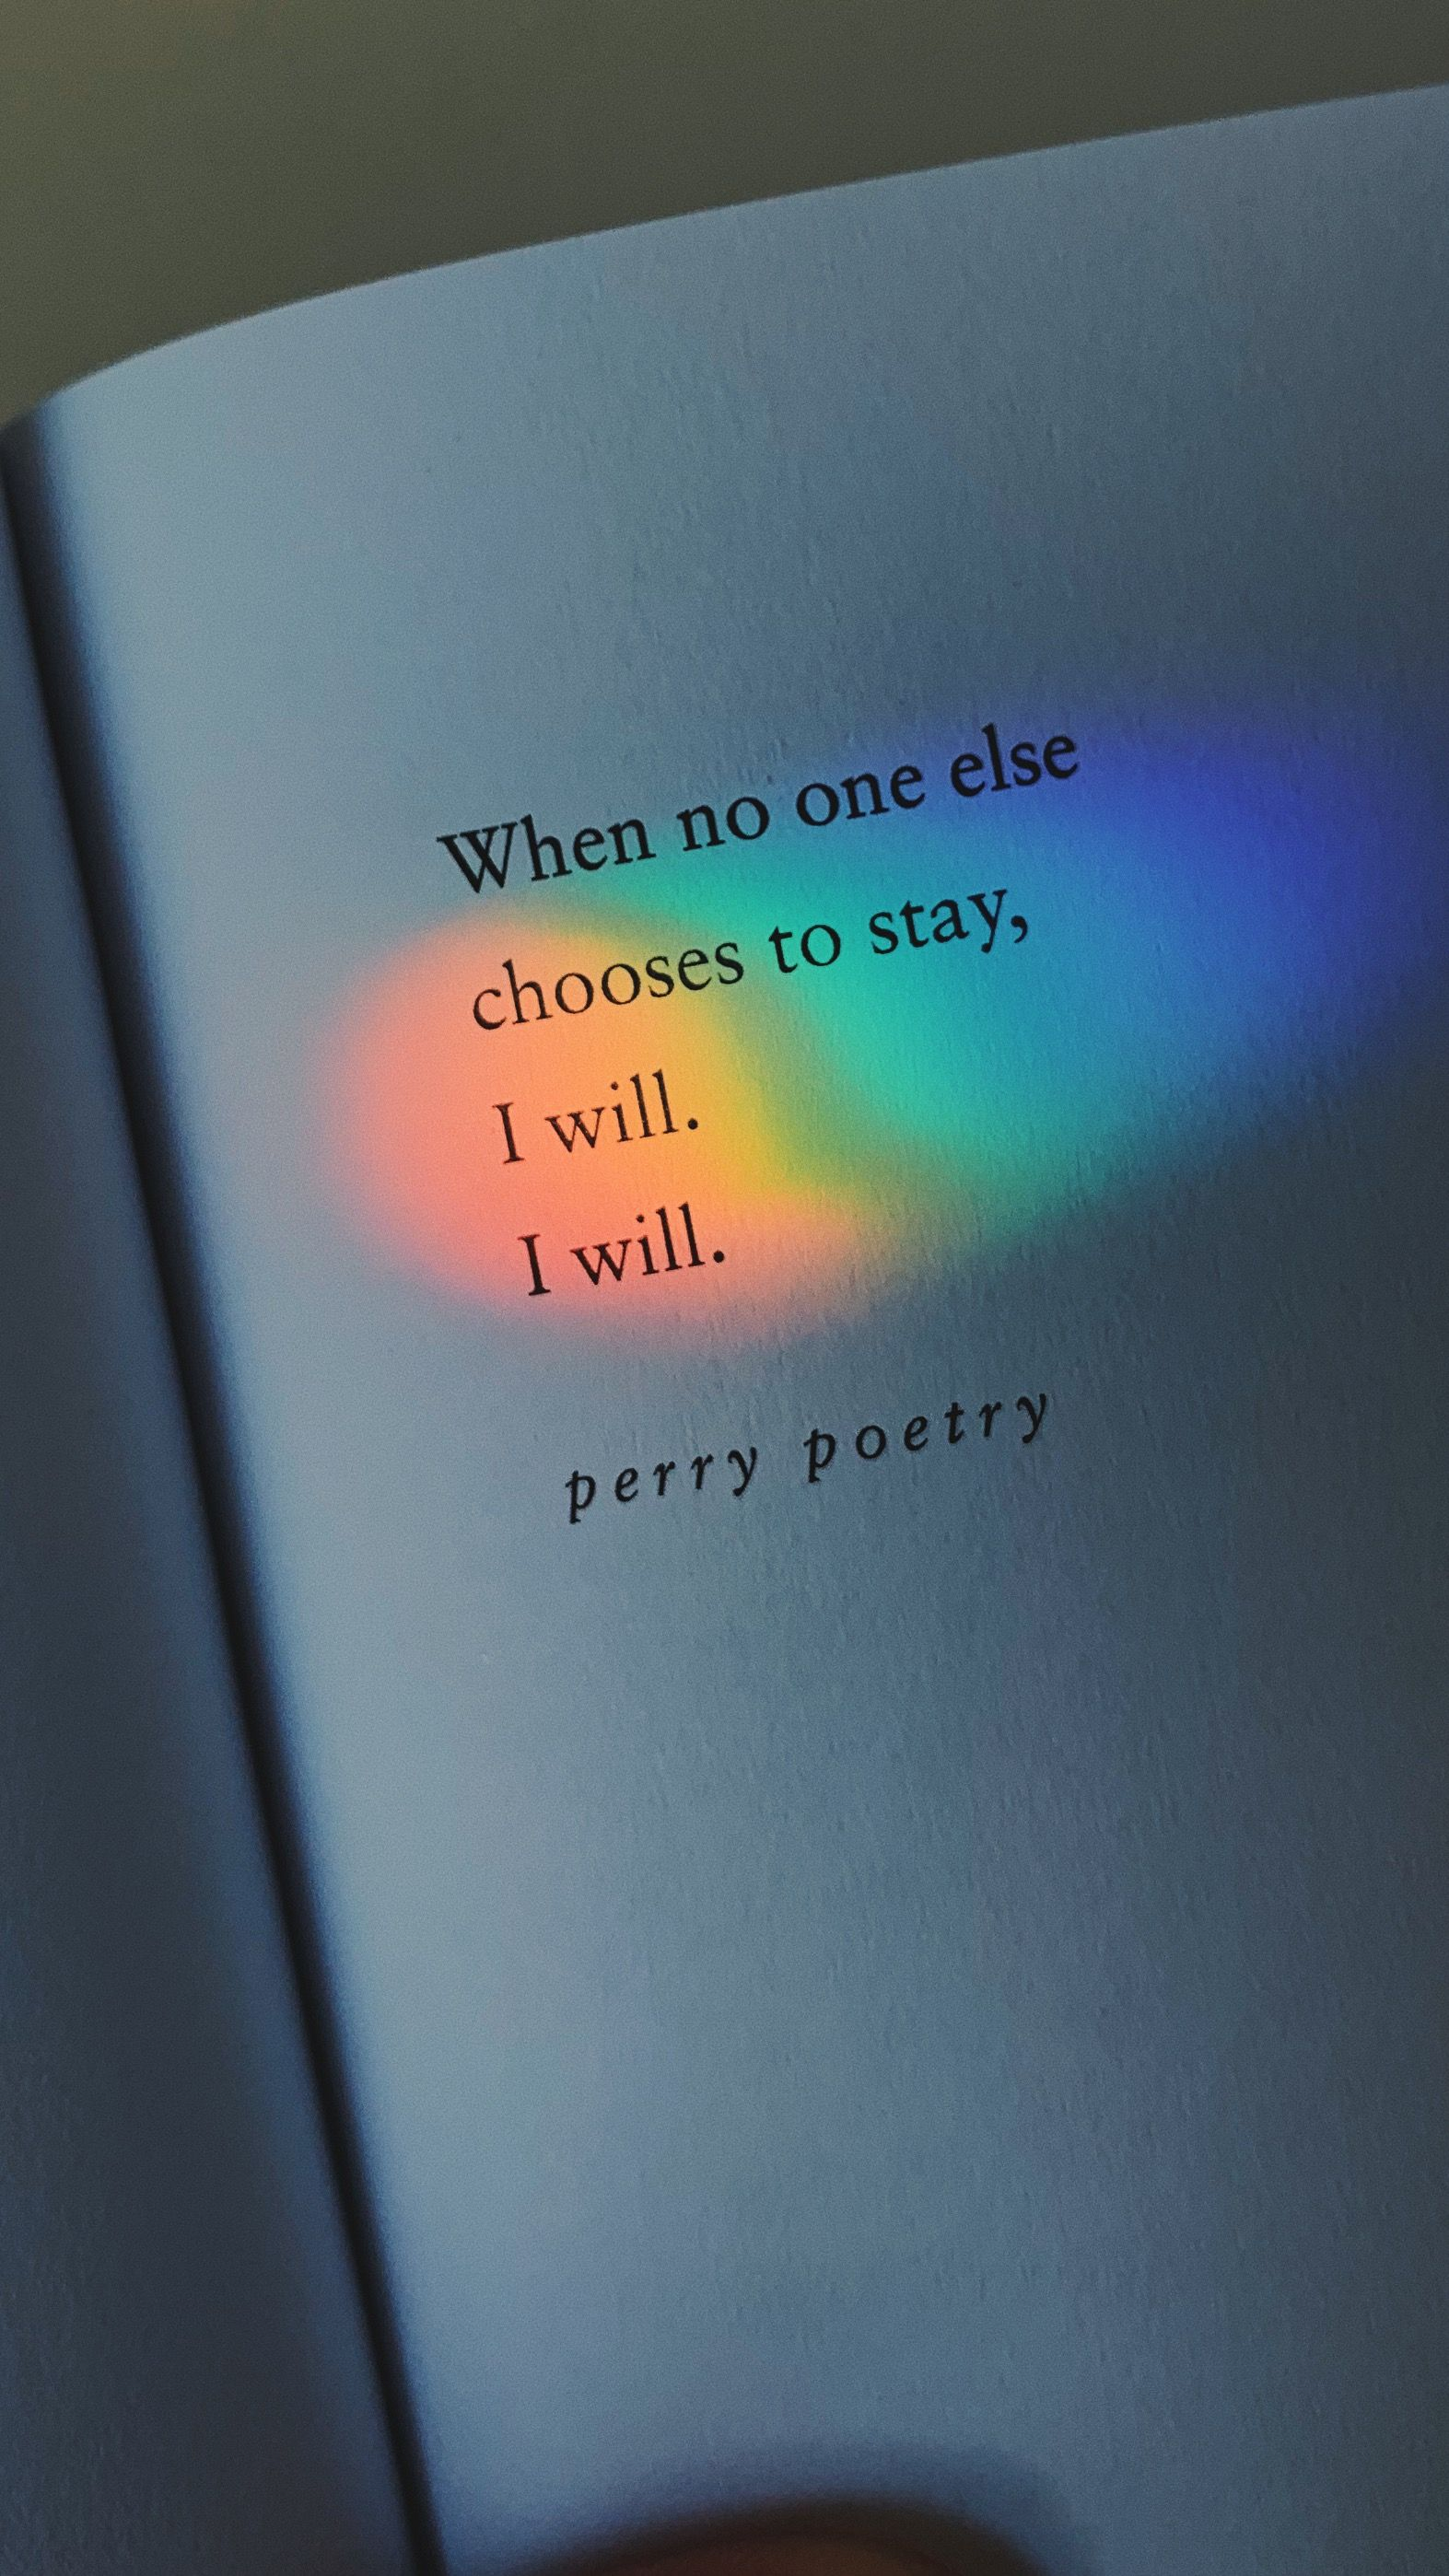 follow perrypoetry on instagram for daily poetry poem